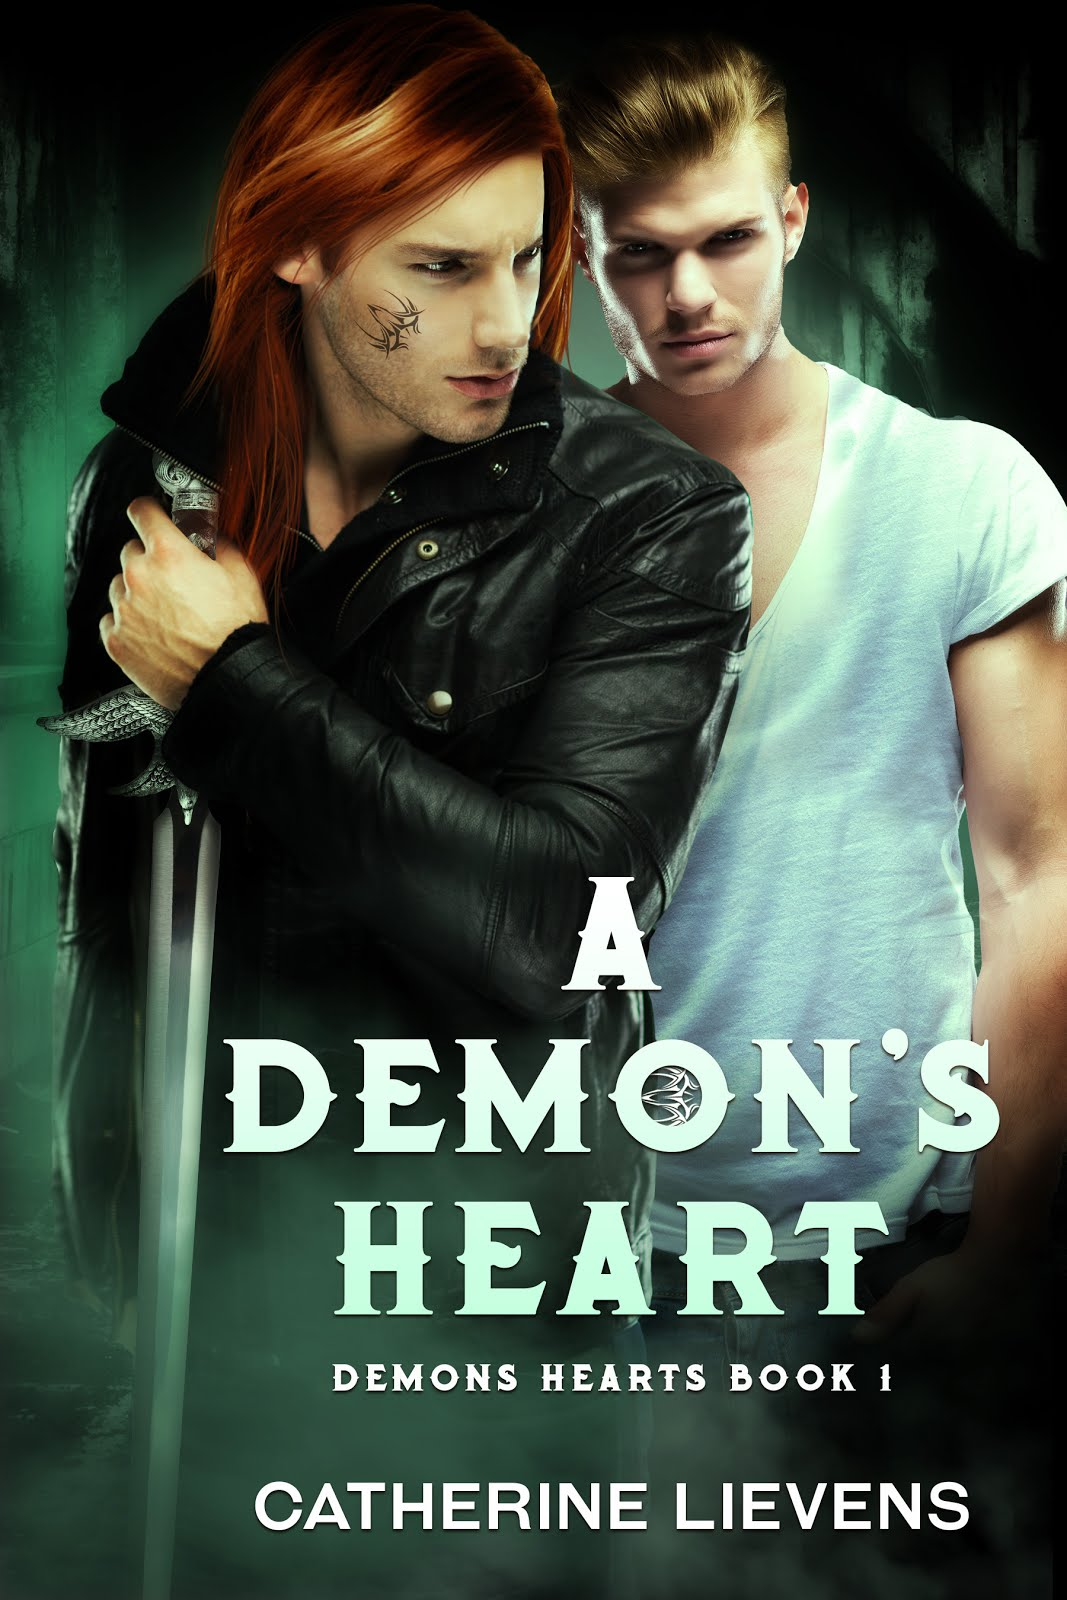 A DEMON'S HEART: GET IT NOW!